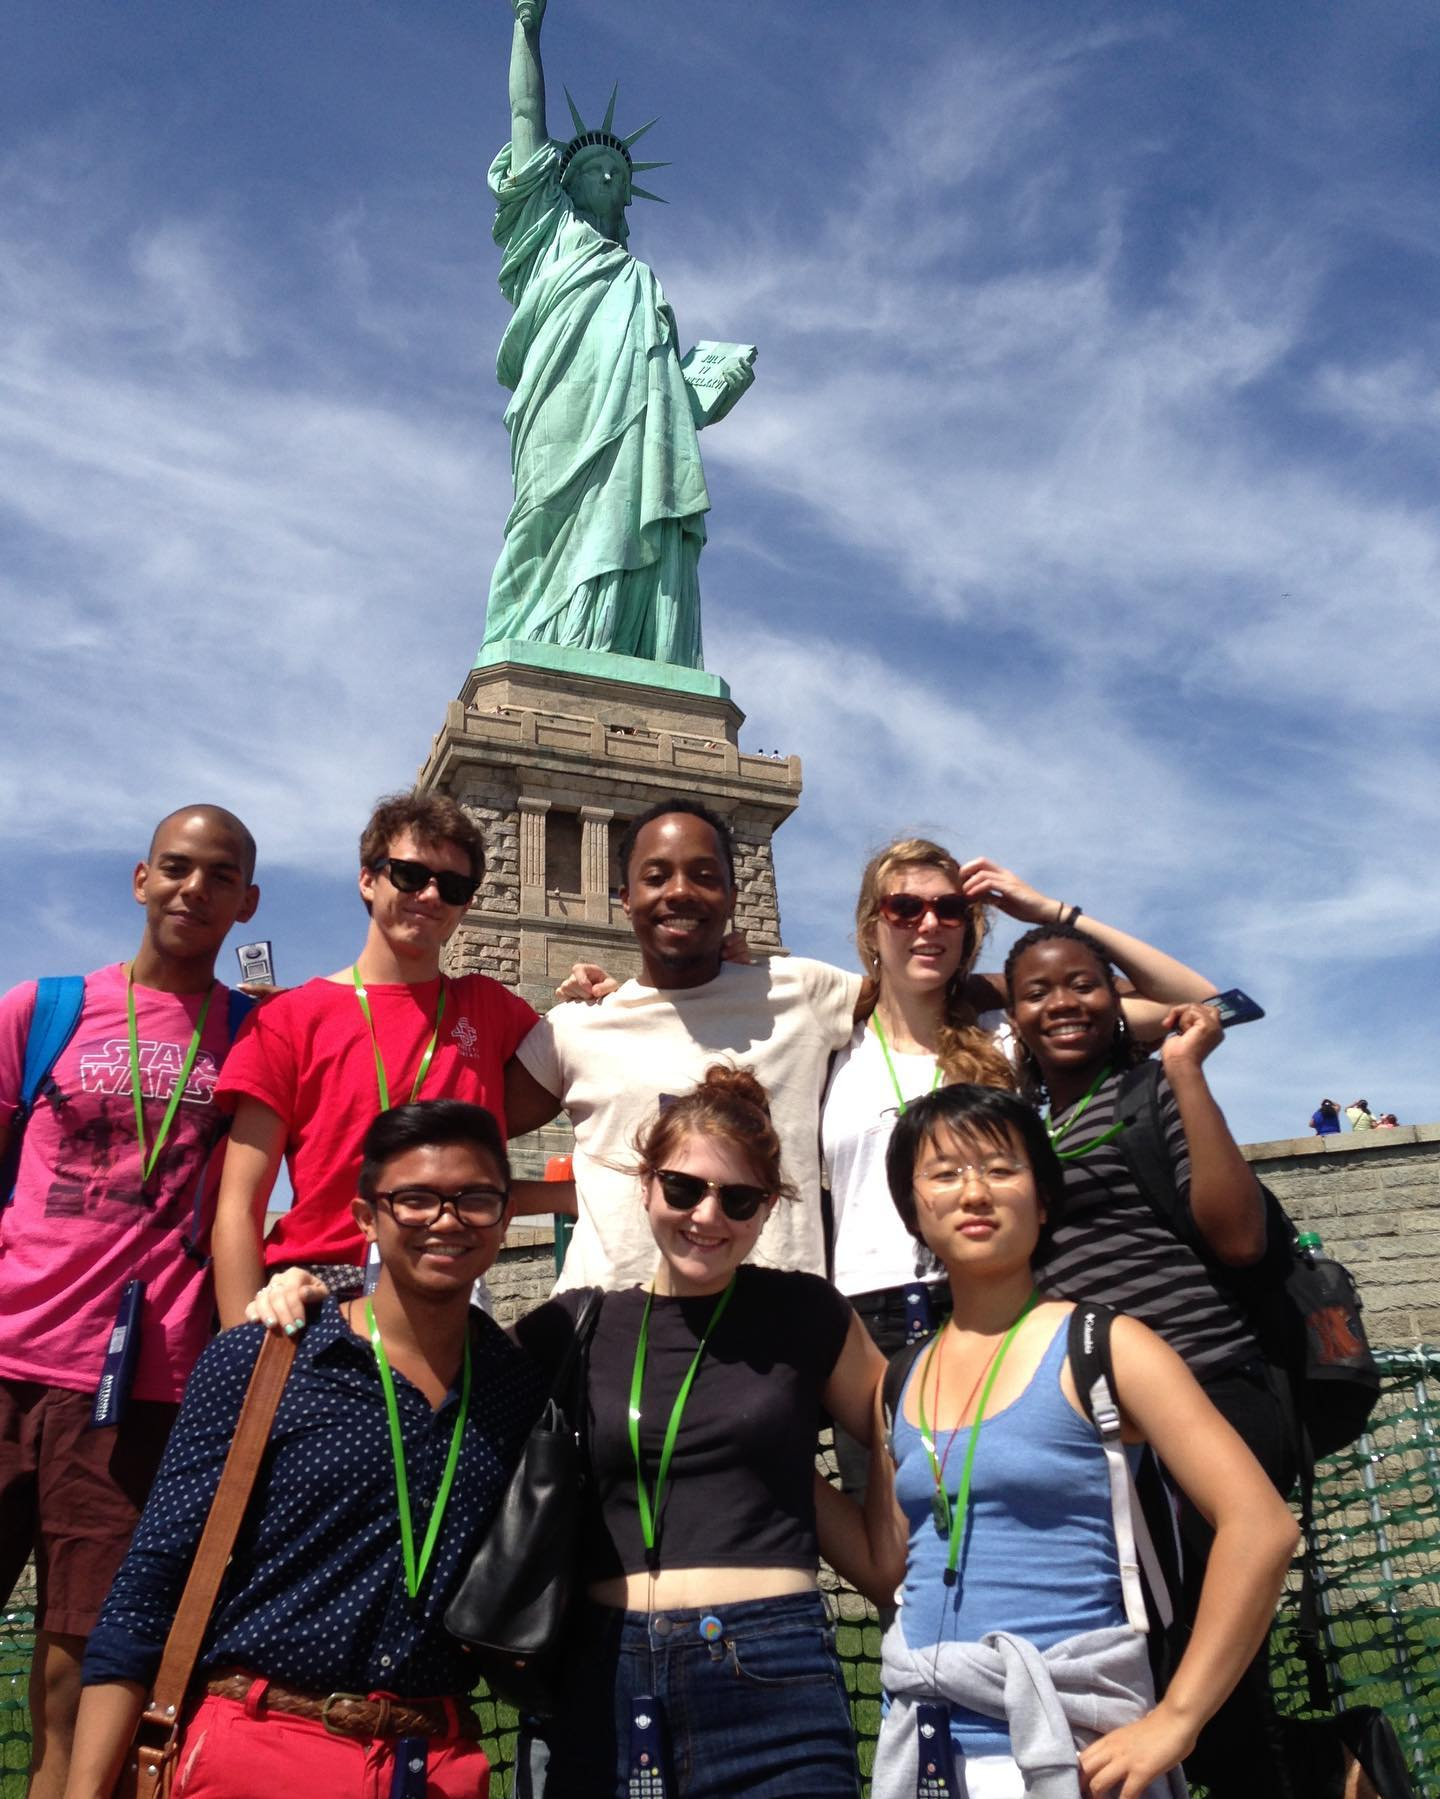 Trinity La MaMa students posing in a group at the Statue of Liberty